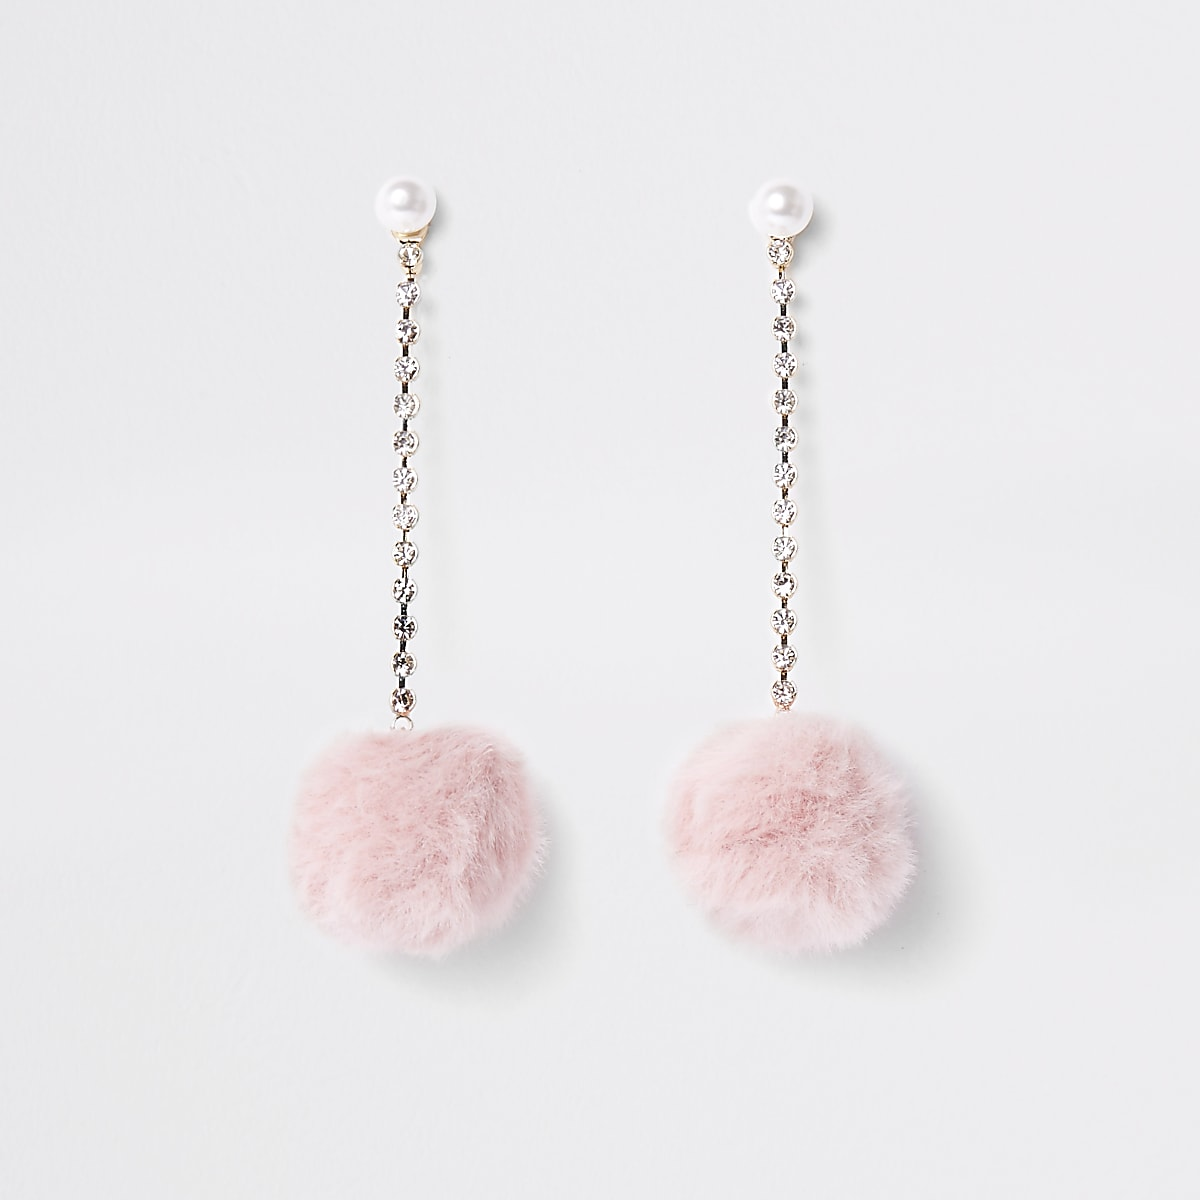 c591dca42 Pink pearl pom pom drop stud earrings - Earrings - Jewellery - women